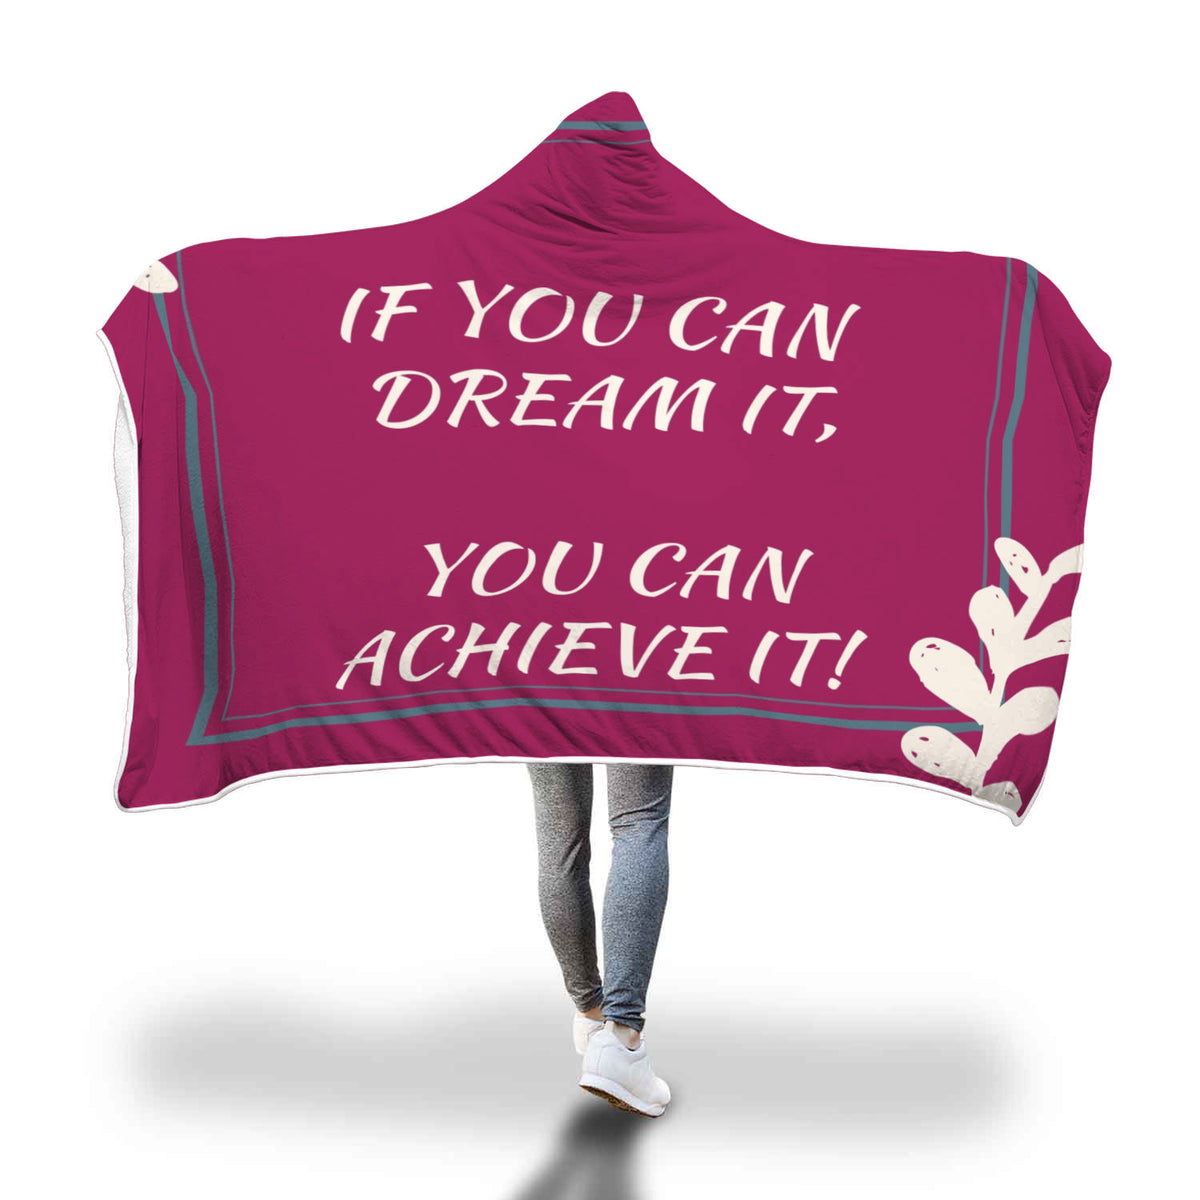 If you can dream it, You can achieve it